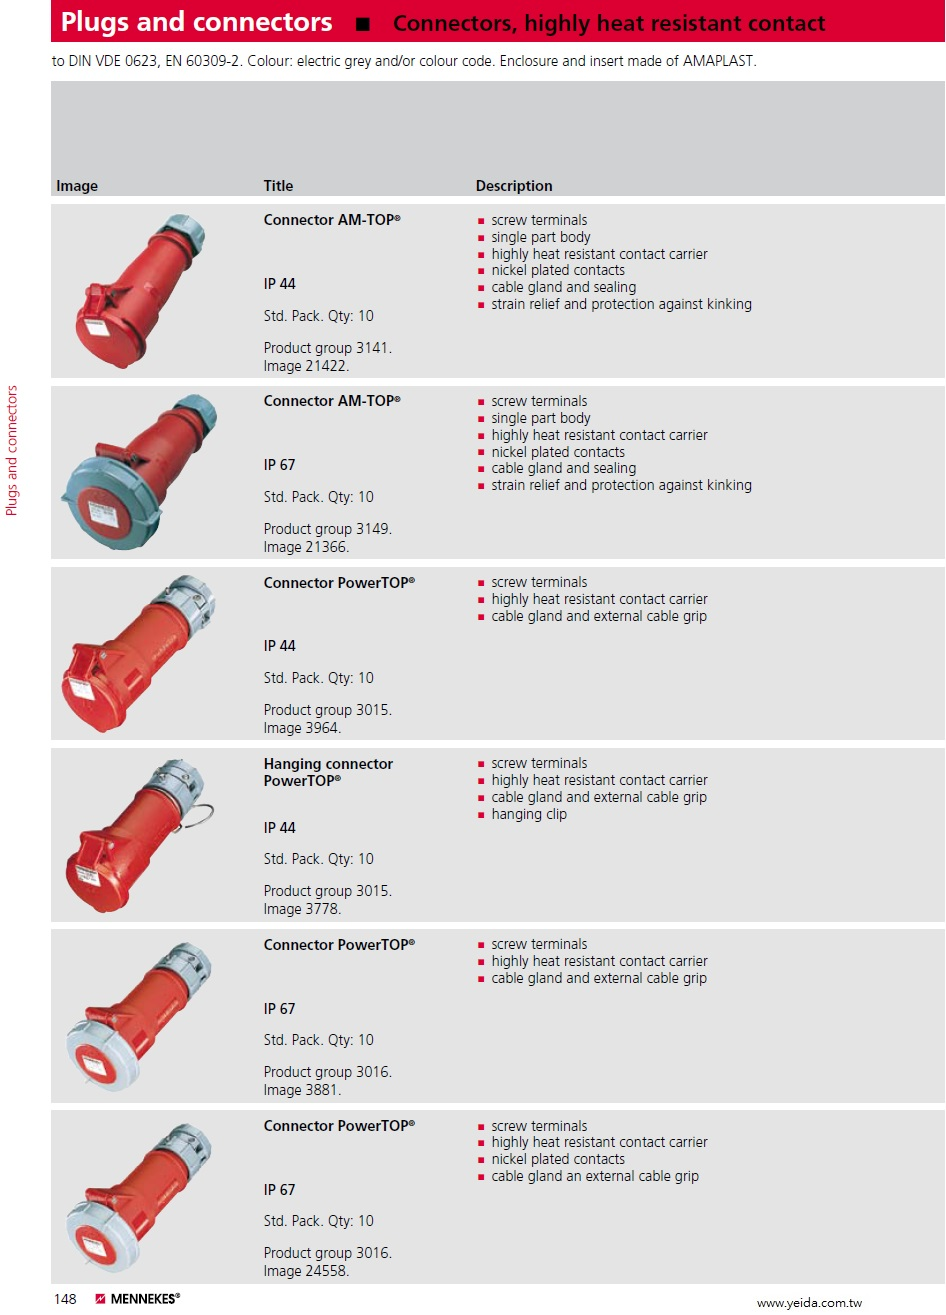 MENNEKES, Industrial Connectors, highly heat resistant contact, 16A - 32A, IP 44 and IP 67, DIN VDE 0623, EN 60309-2, 曼奈柯斯, 歐規工業級電線連接器(帶耐高溫內芯體)產品圖